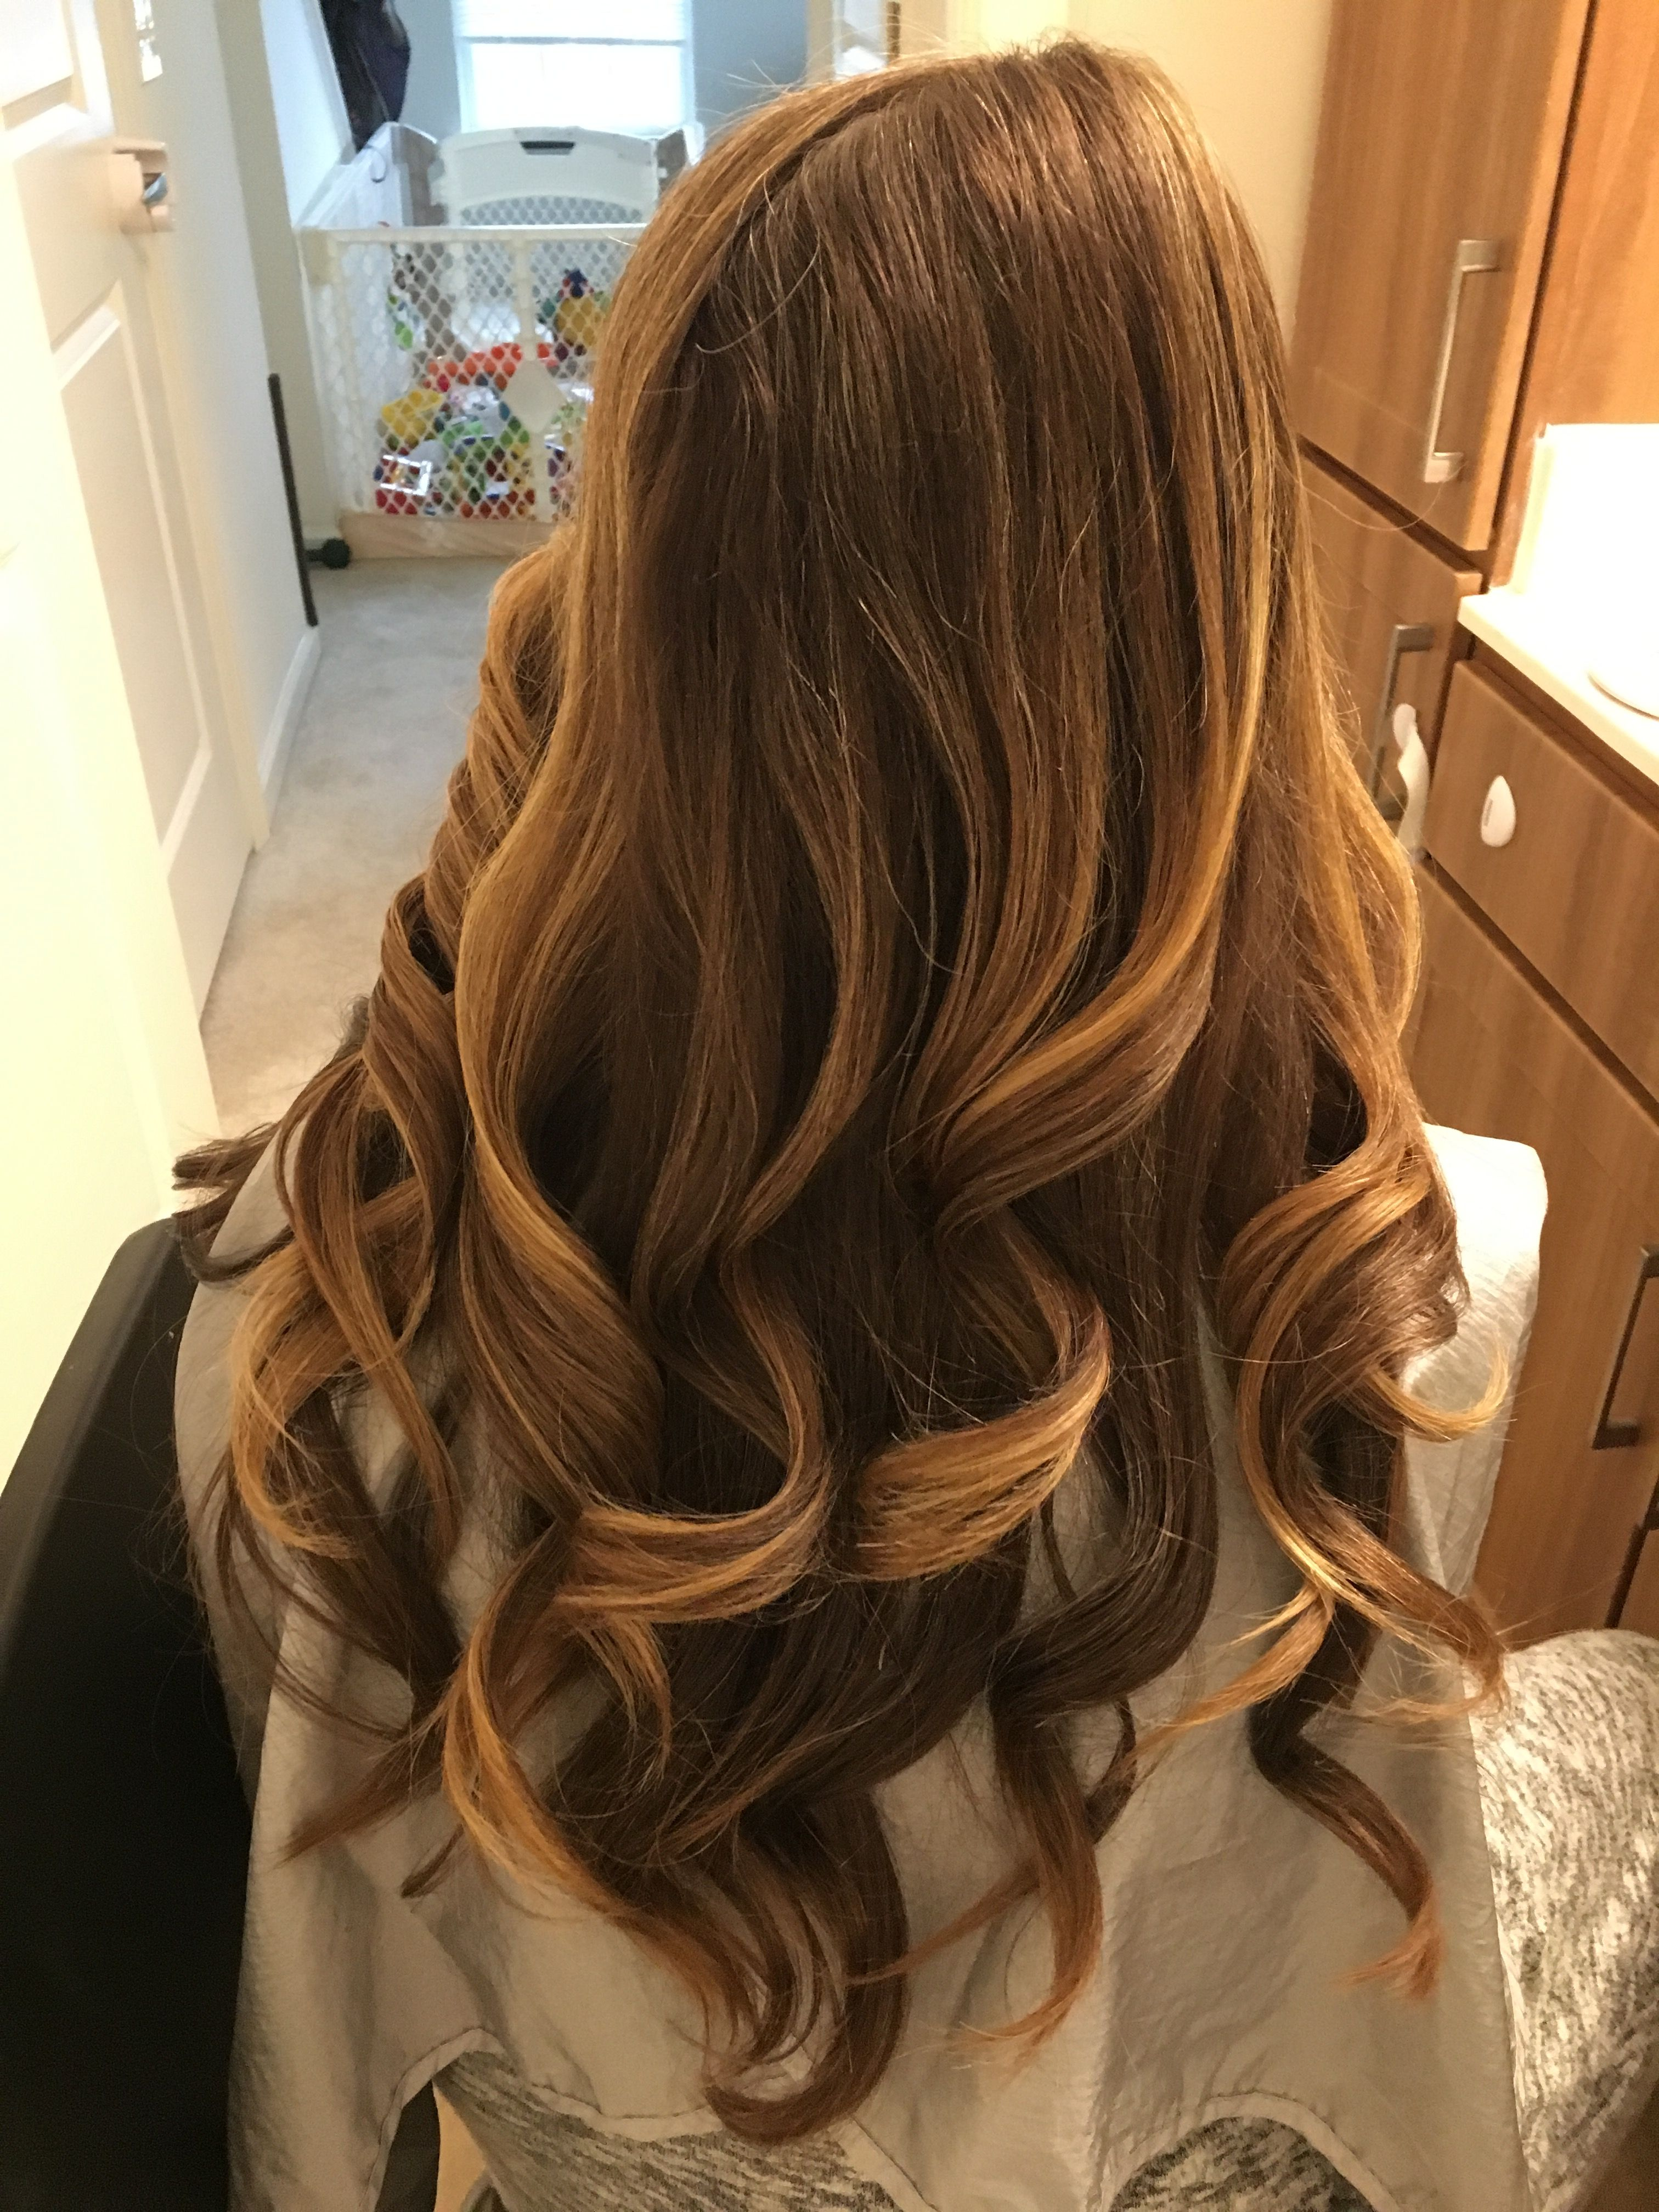 Pin By Hair By Jo On Wedding Hairstyles Sweet 16 Proms My Creative Hair Designs Weddings Events All Occasion Hair Done By Joanne Jostyles479 Aol Com Loose Curls Hairstyles